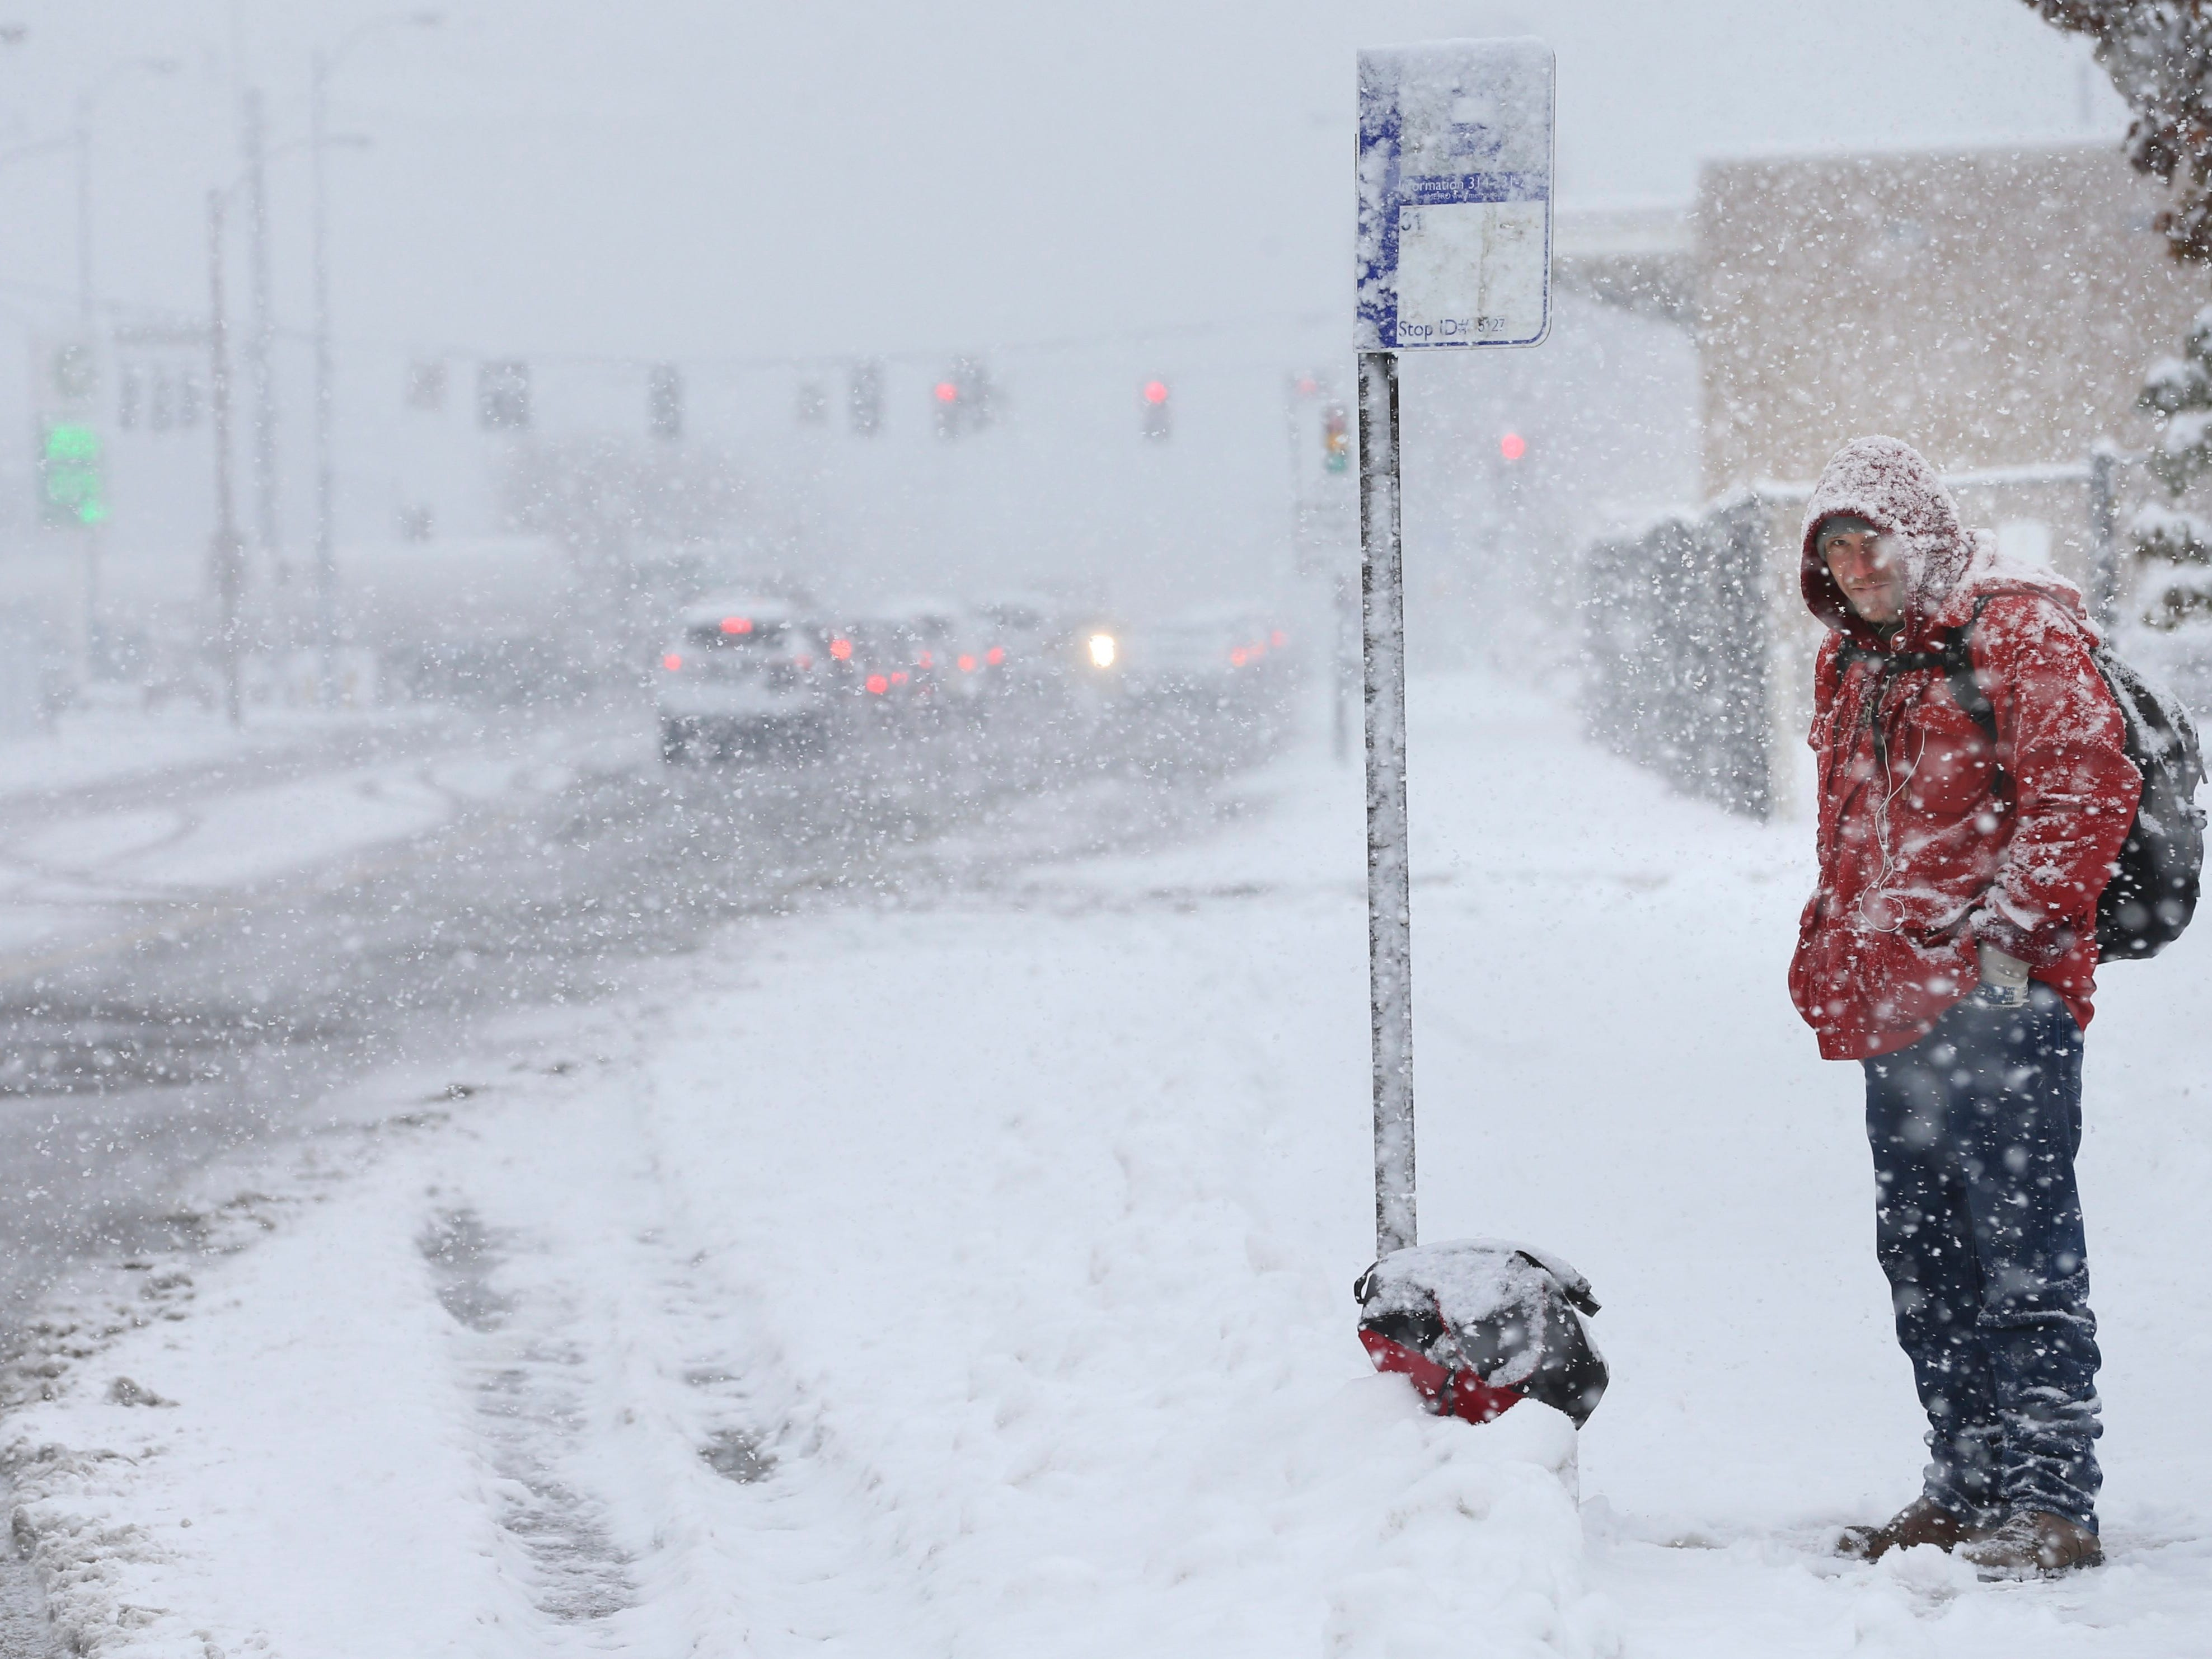 Lyod Graham waits for the bus during a snowstorm in St. Louis, Mo., Thursday, Nov. 15, 2018.